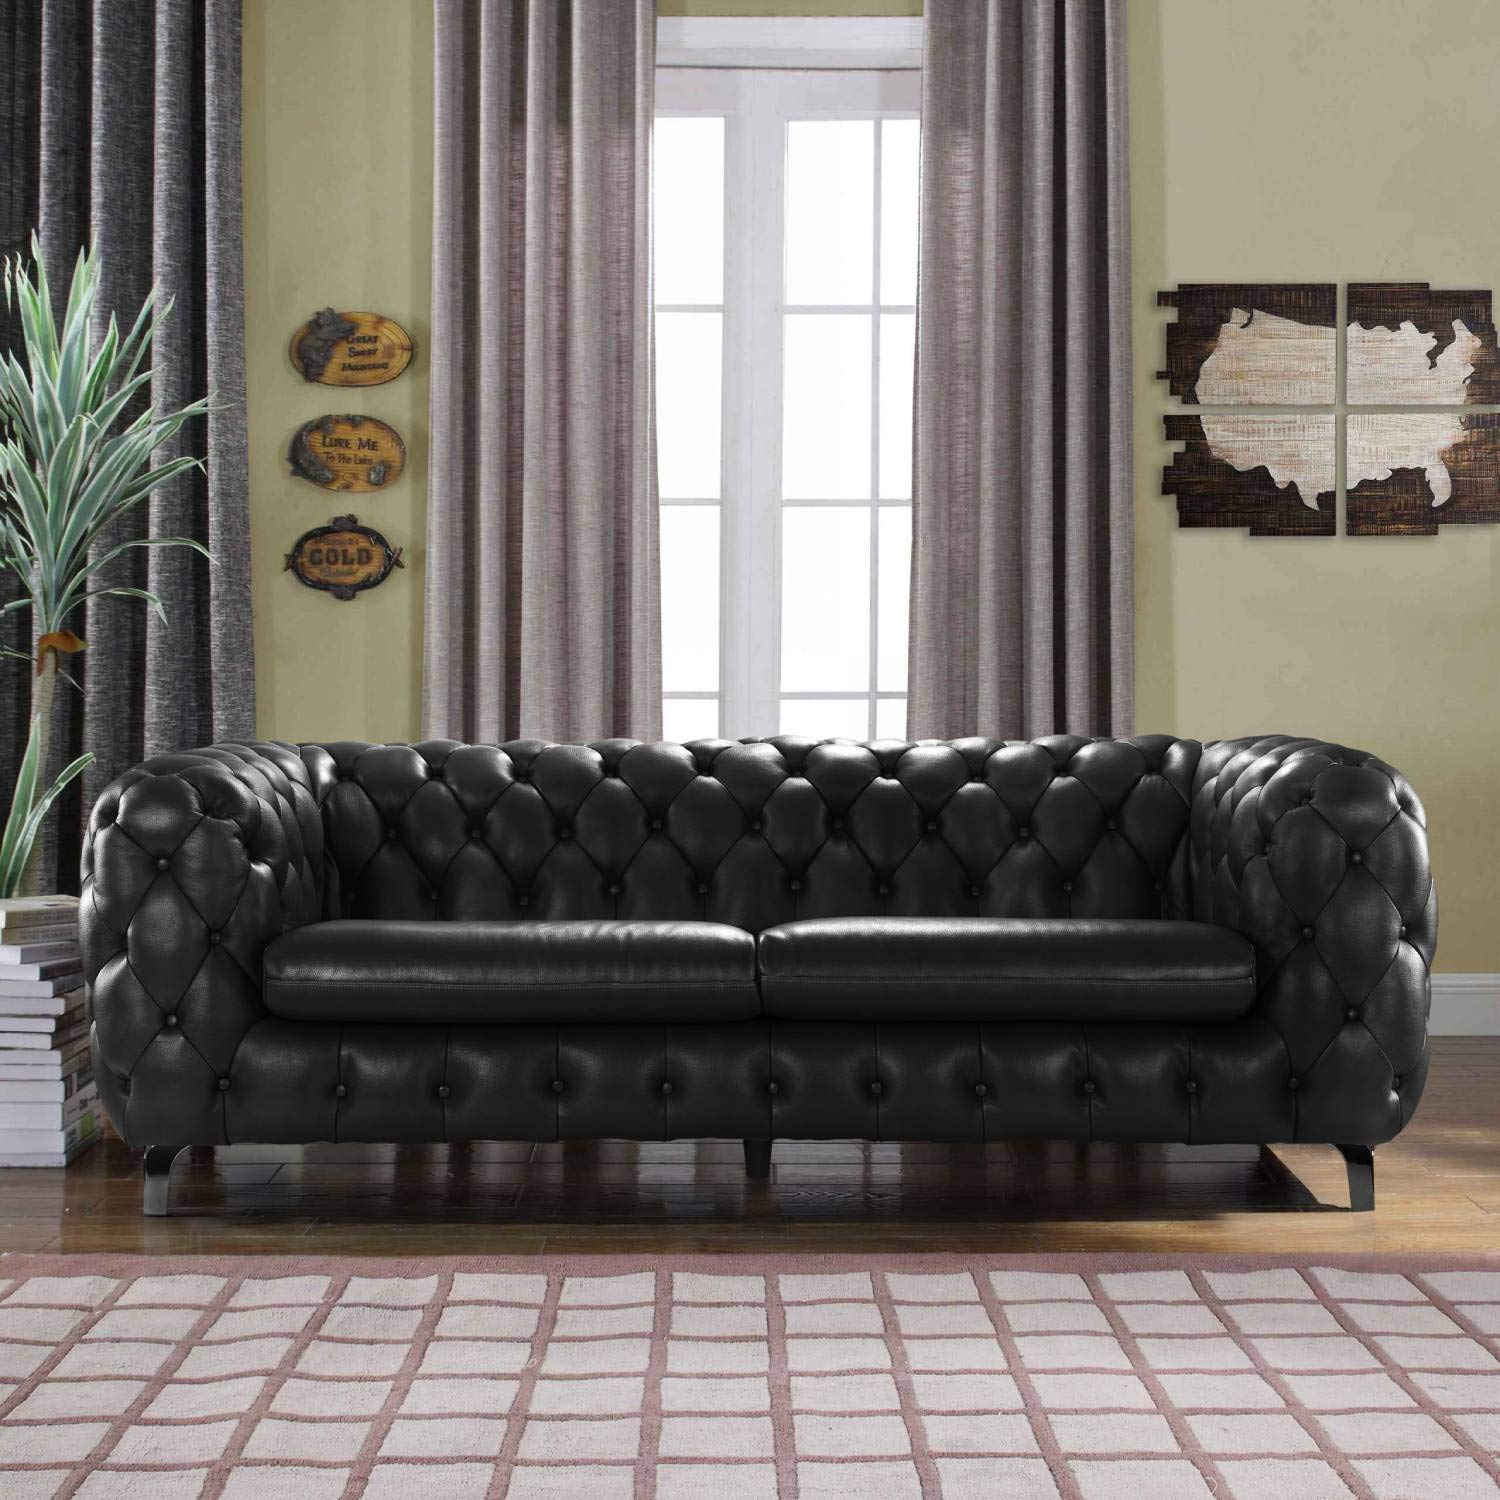 Amazon.com: Black Leather Chesterfield Sofa Couch w/Tufted ...